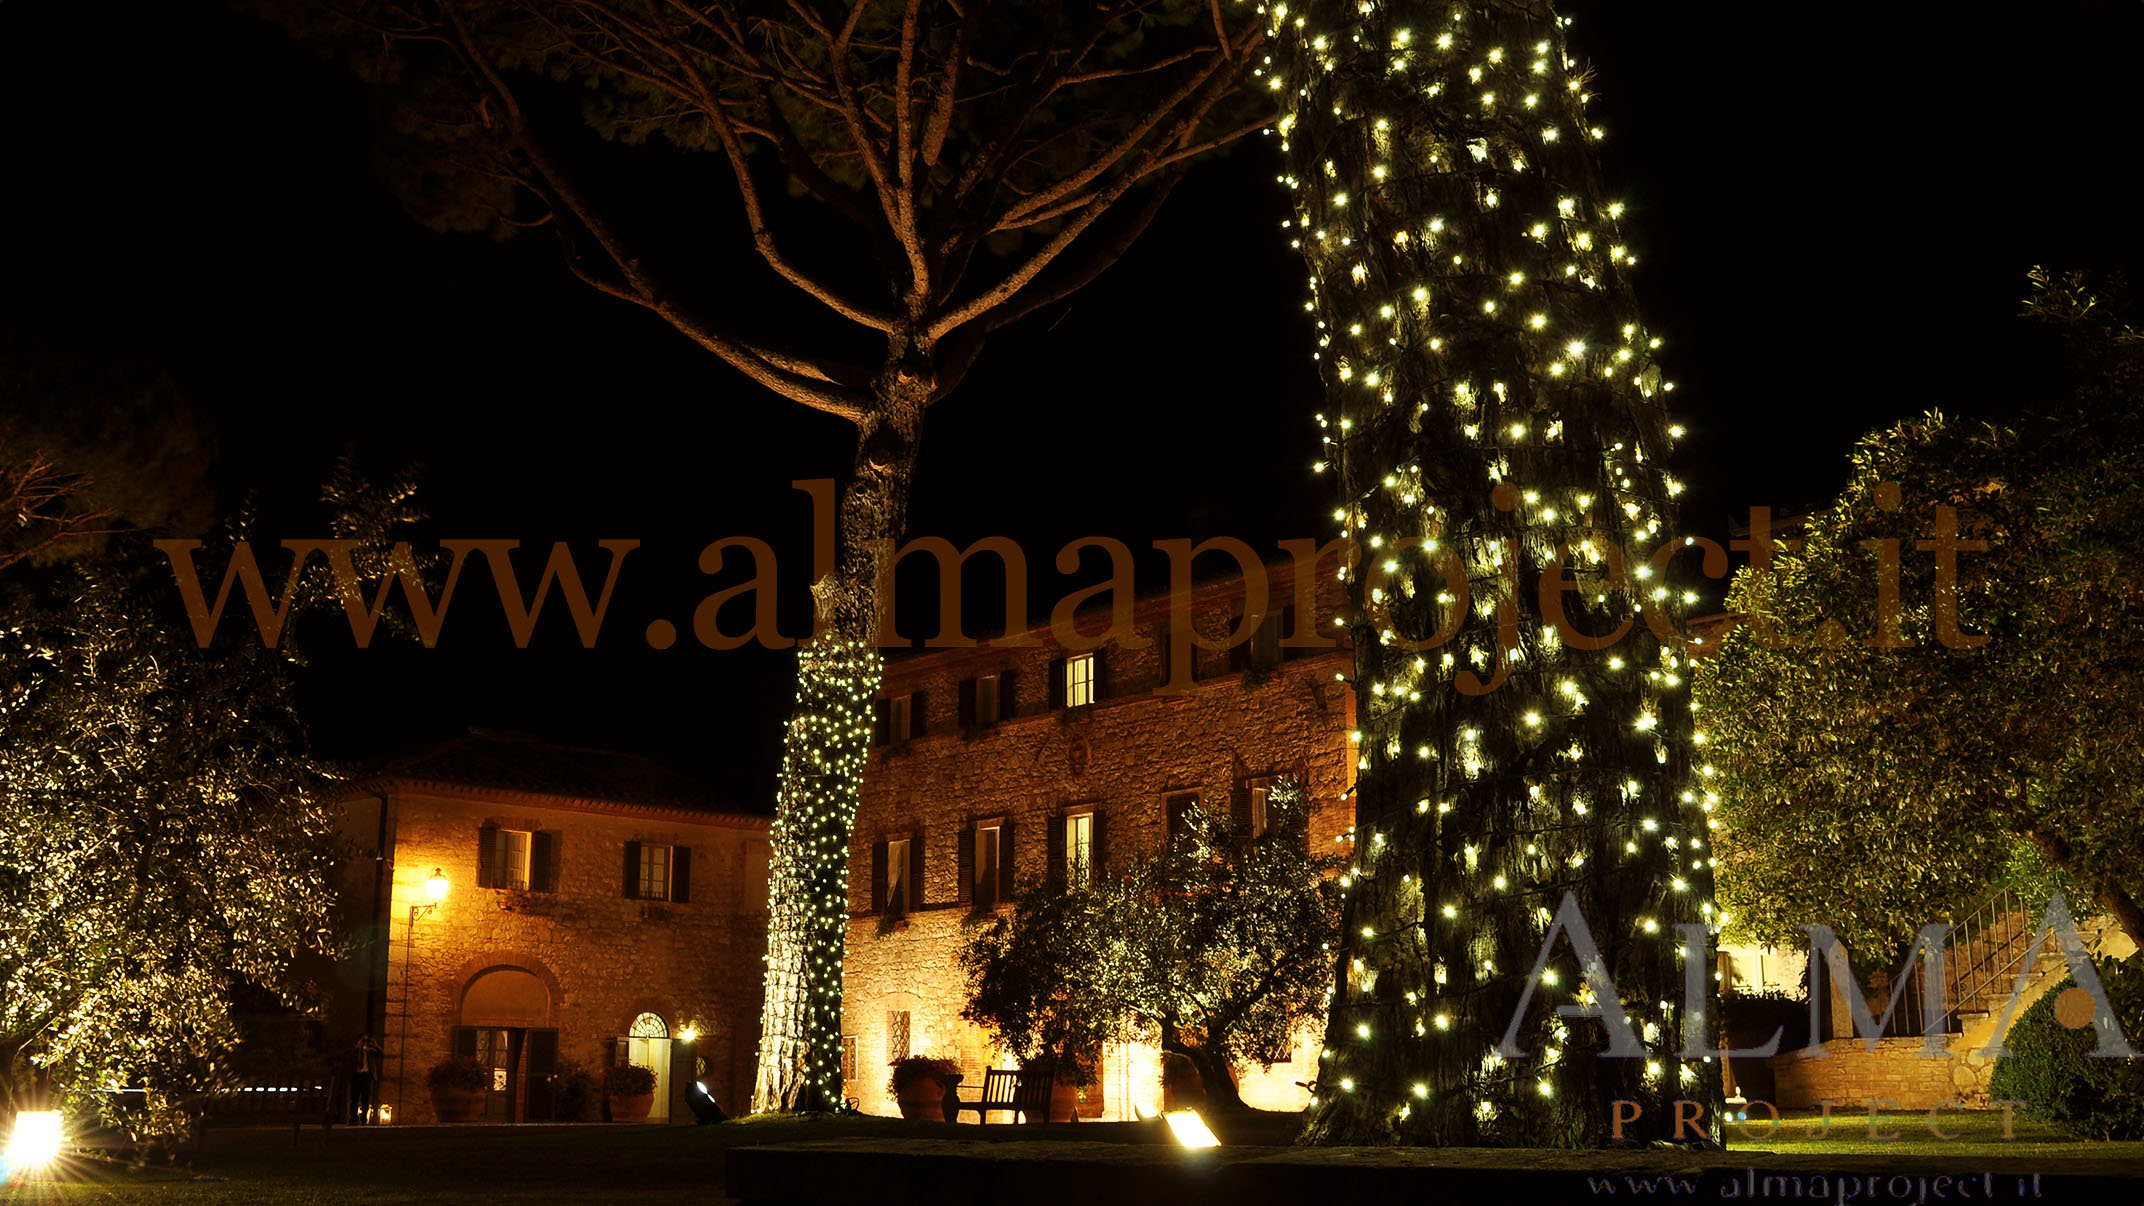 ALMA PROJECT _ Borgo San Felice - Piazza - Fairy light trees - disano - 2